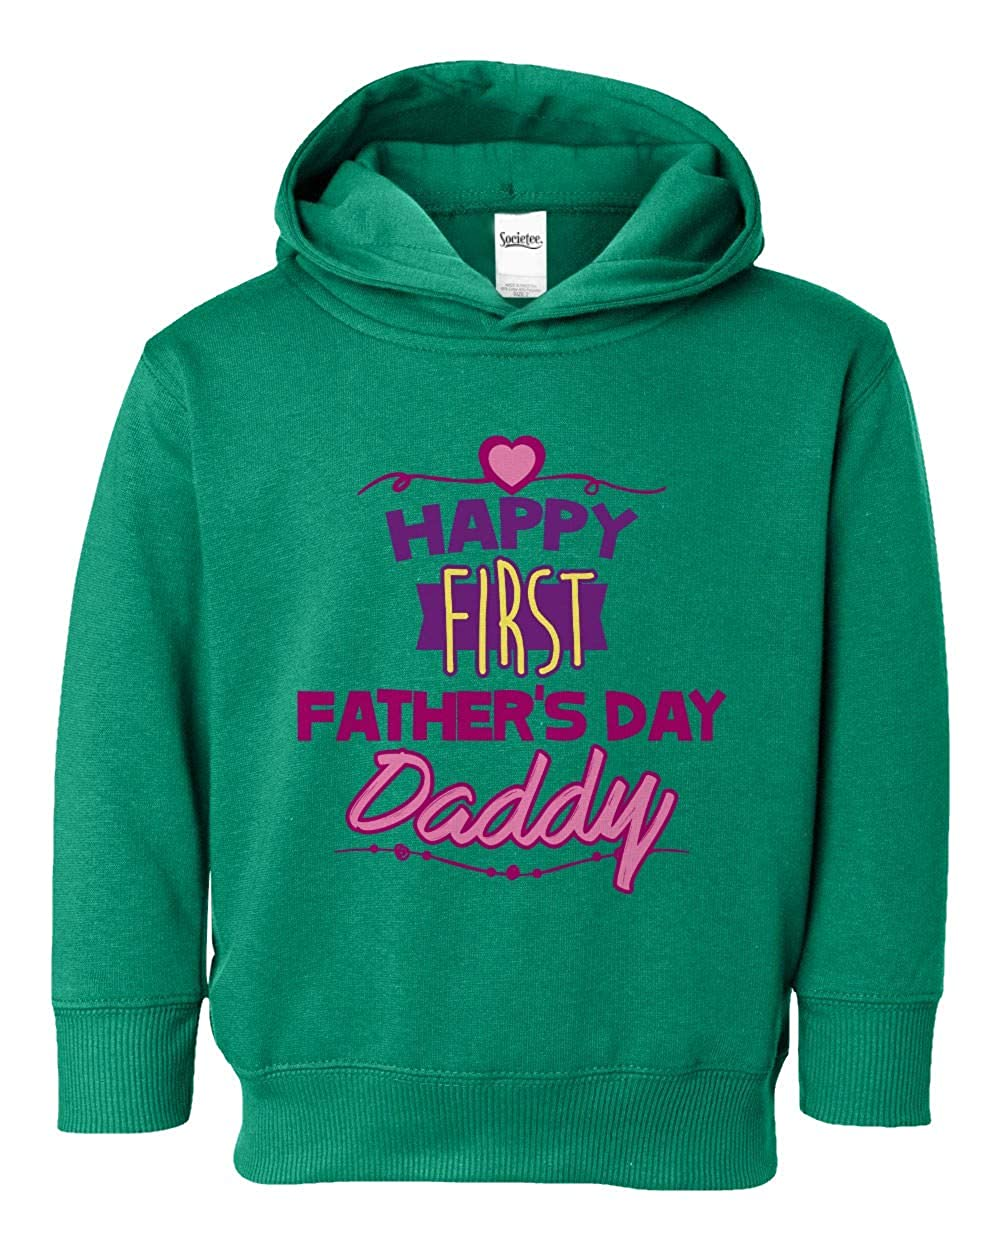 Societee Happy First Fathers Day Daddy Girls Boys Toddler Hooded Sweatshirt